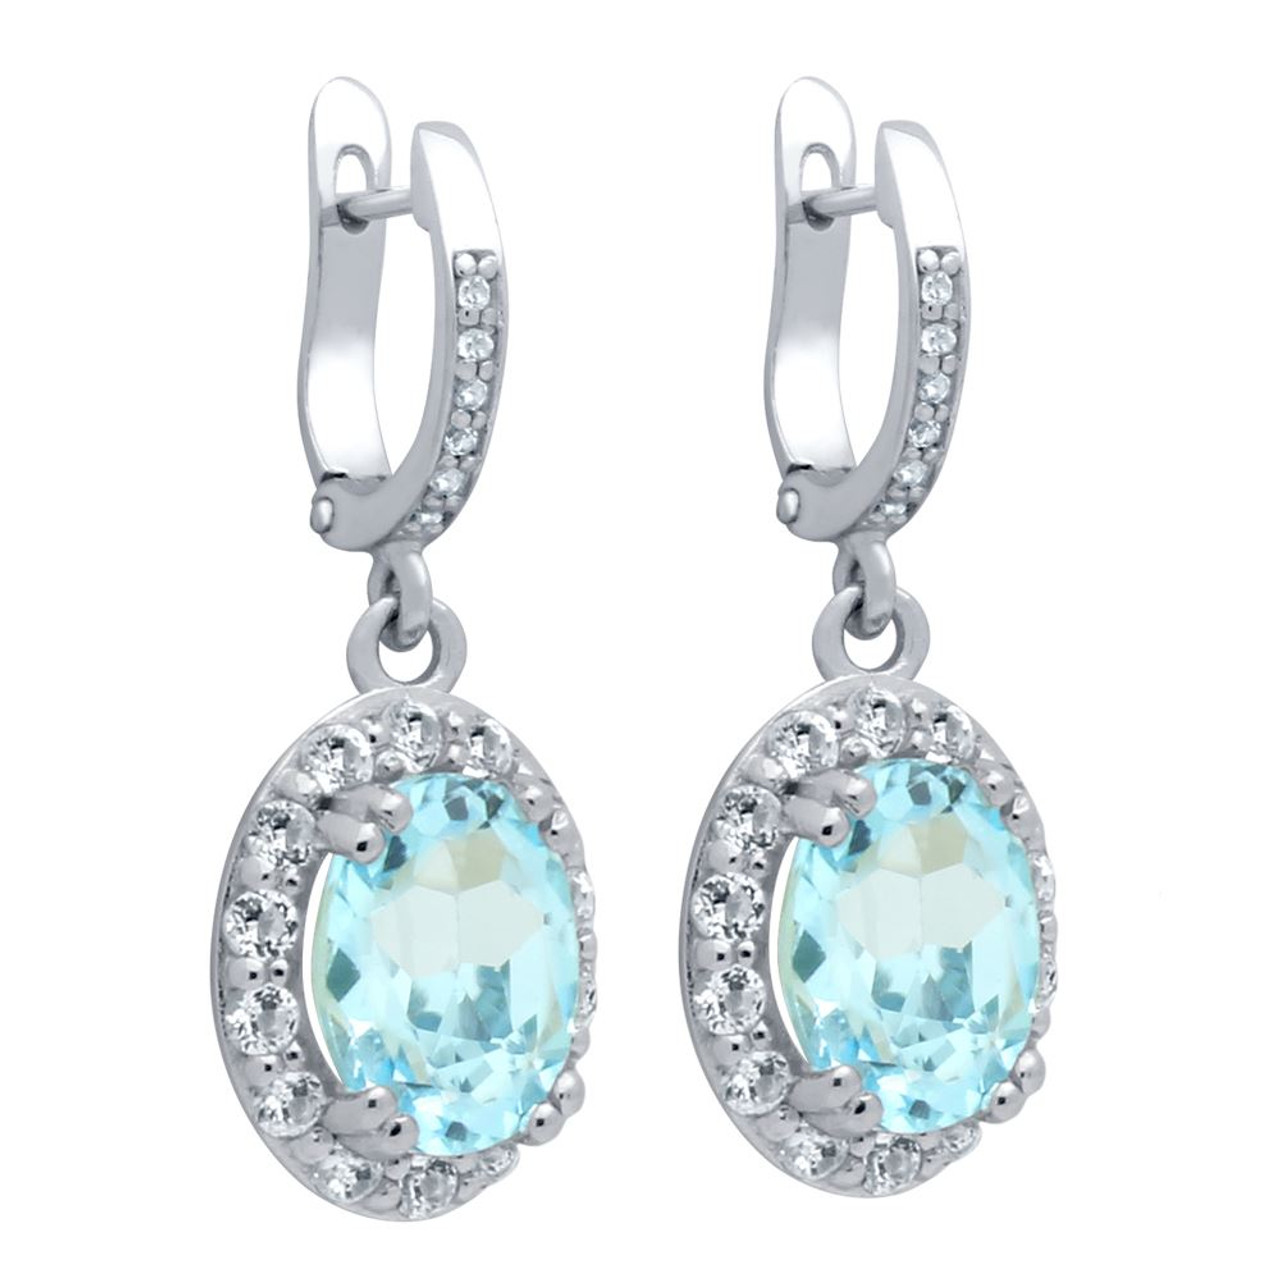 topaz earrings diamond and axd lg to blue jewelry hover zoom